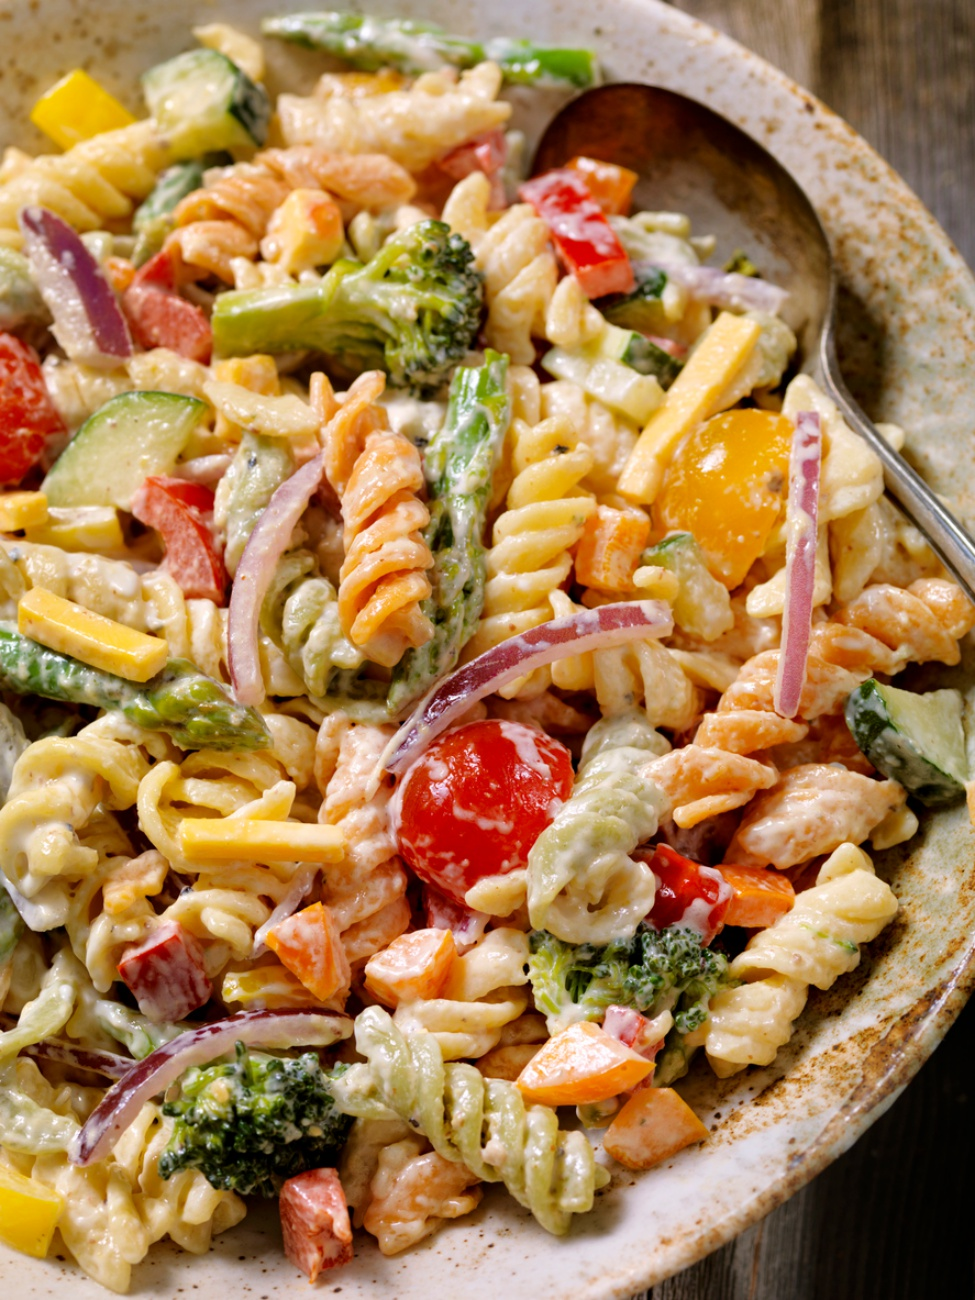 Creamy Pasta and Vegetable Salad